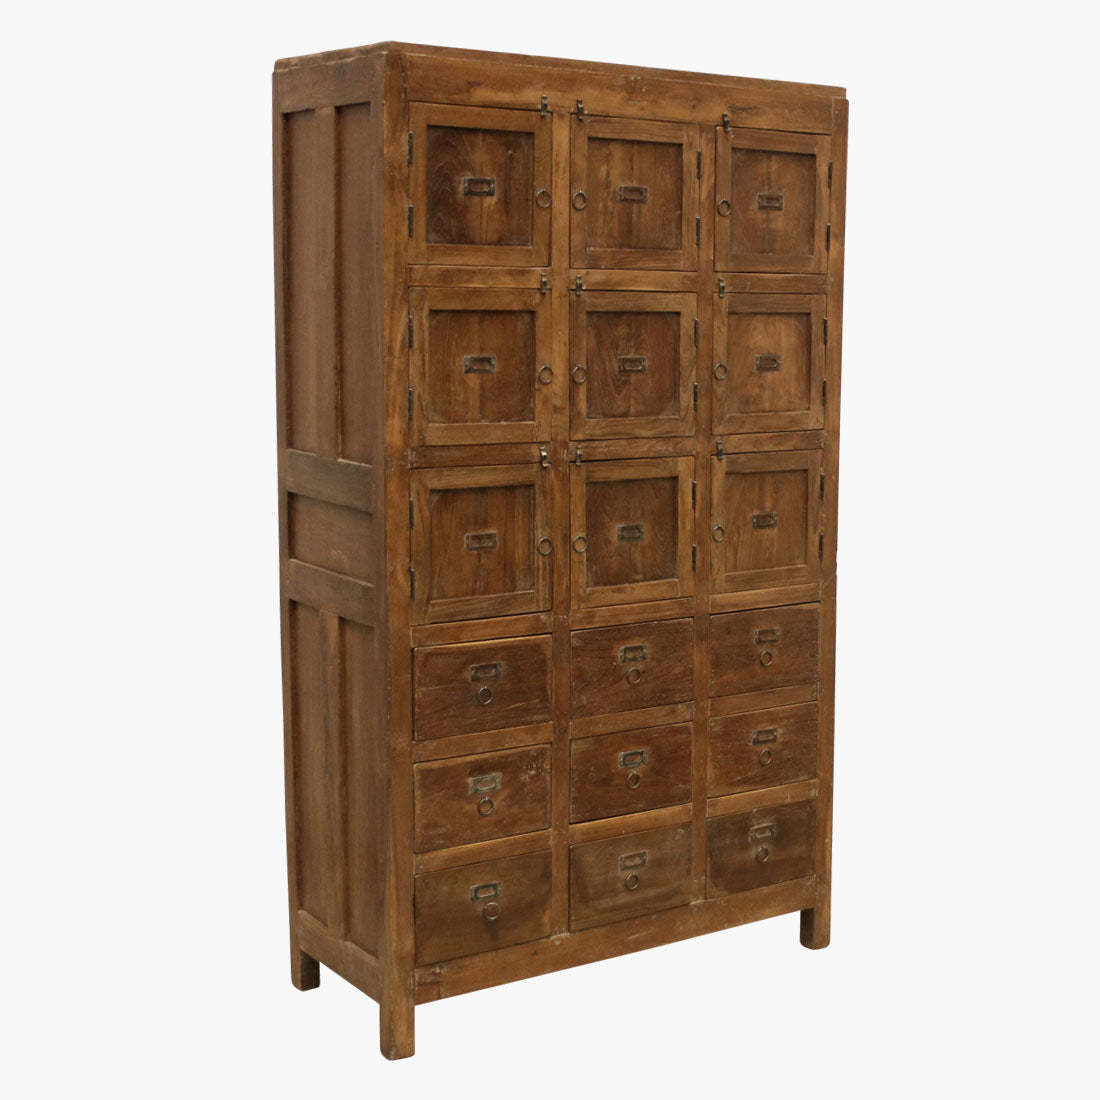 Teak 9 door 9 drawer cabinet